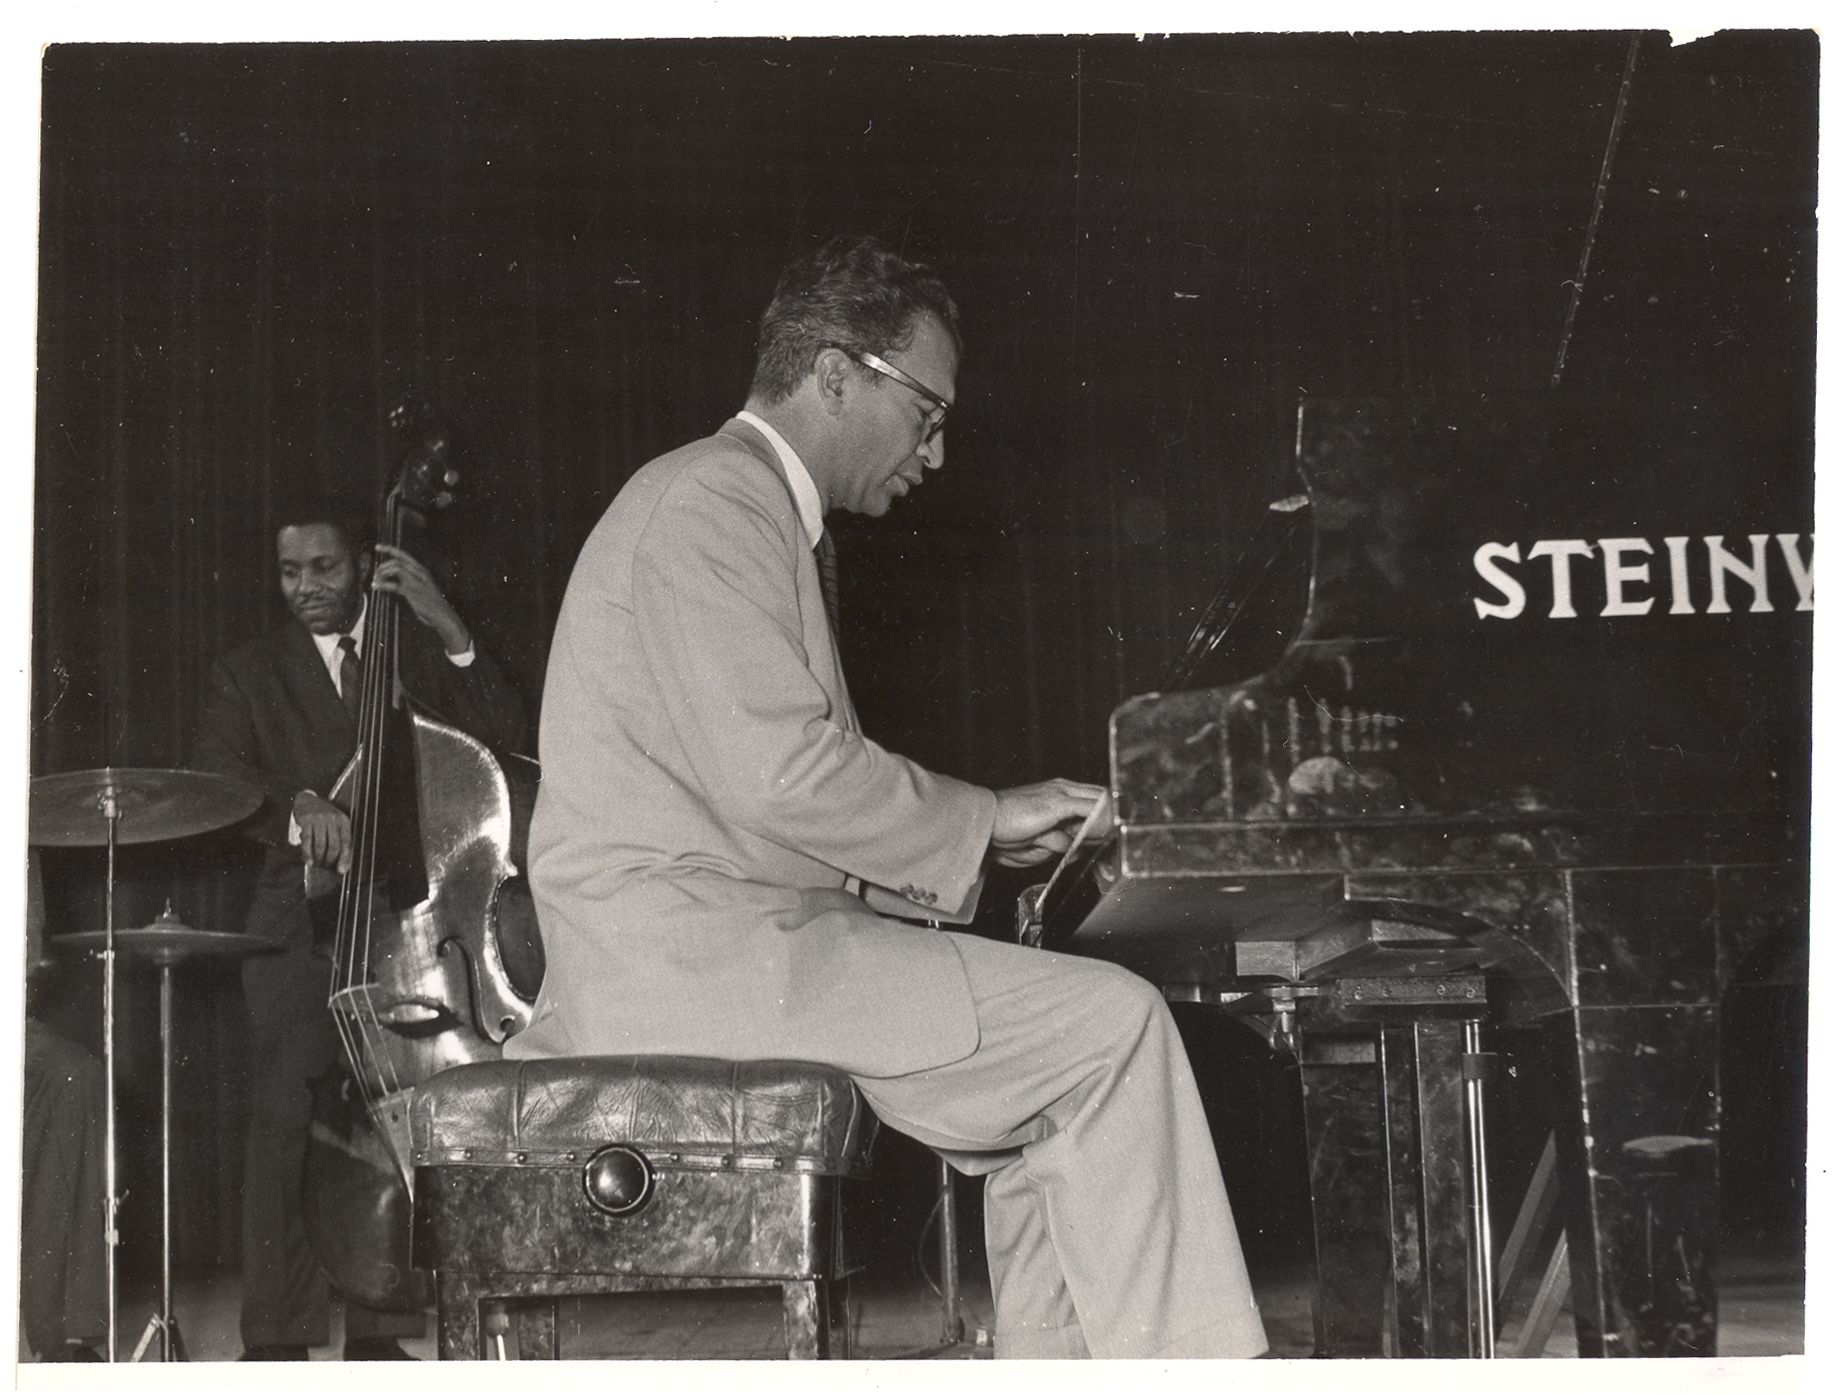 Dave Brubeck performs in Warsaw, Poland in April 1958. Credit: Marek A. Karewicz / Courtesy of the Brubeck Collection, Holt-Atherton Special Collections, University of the Pacific Library. (c) Dave Brubeck.